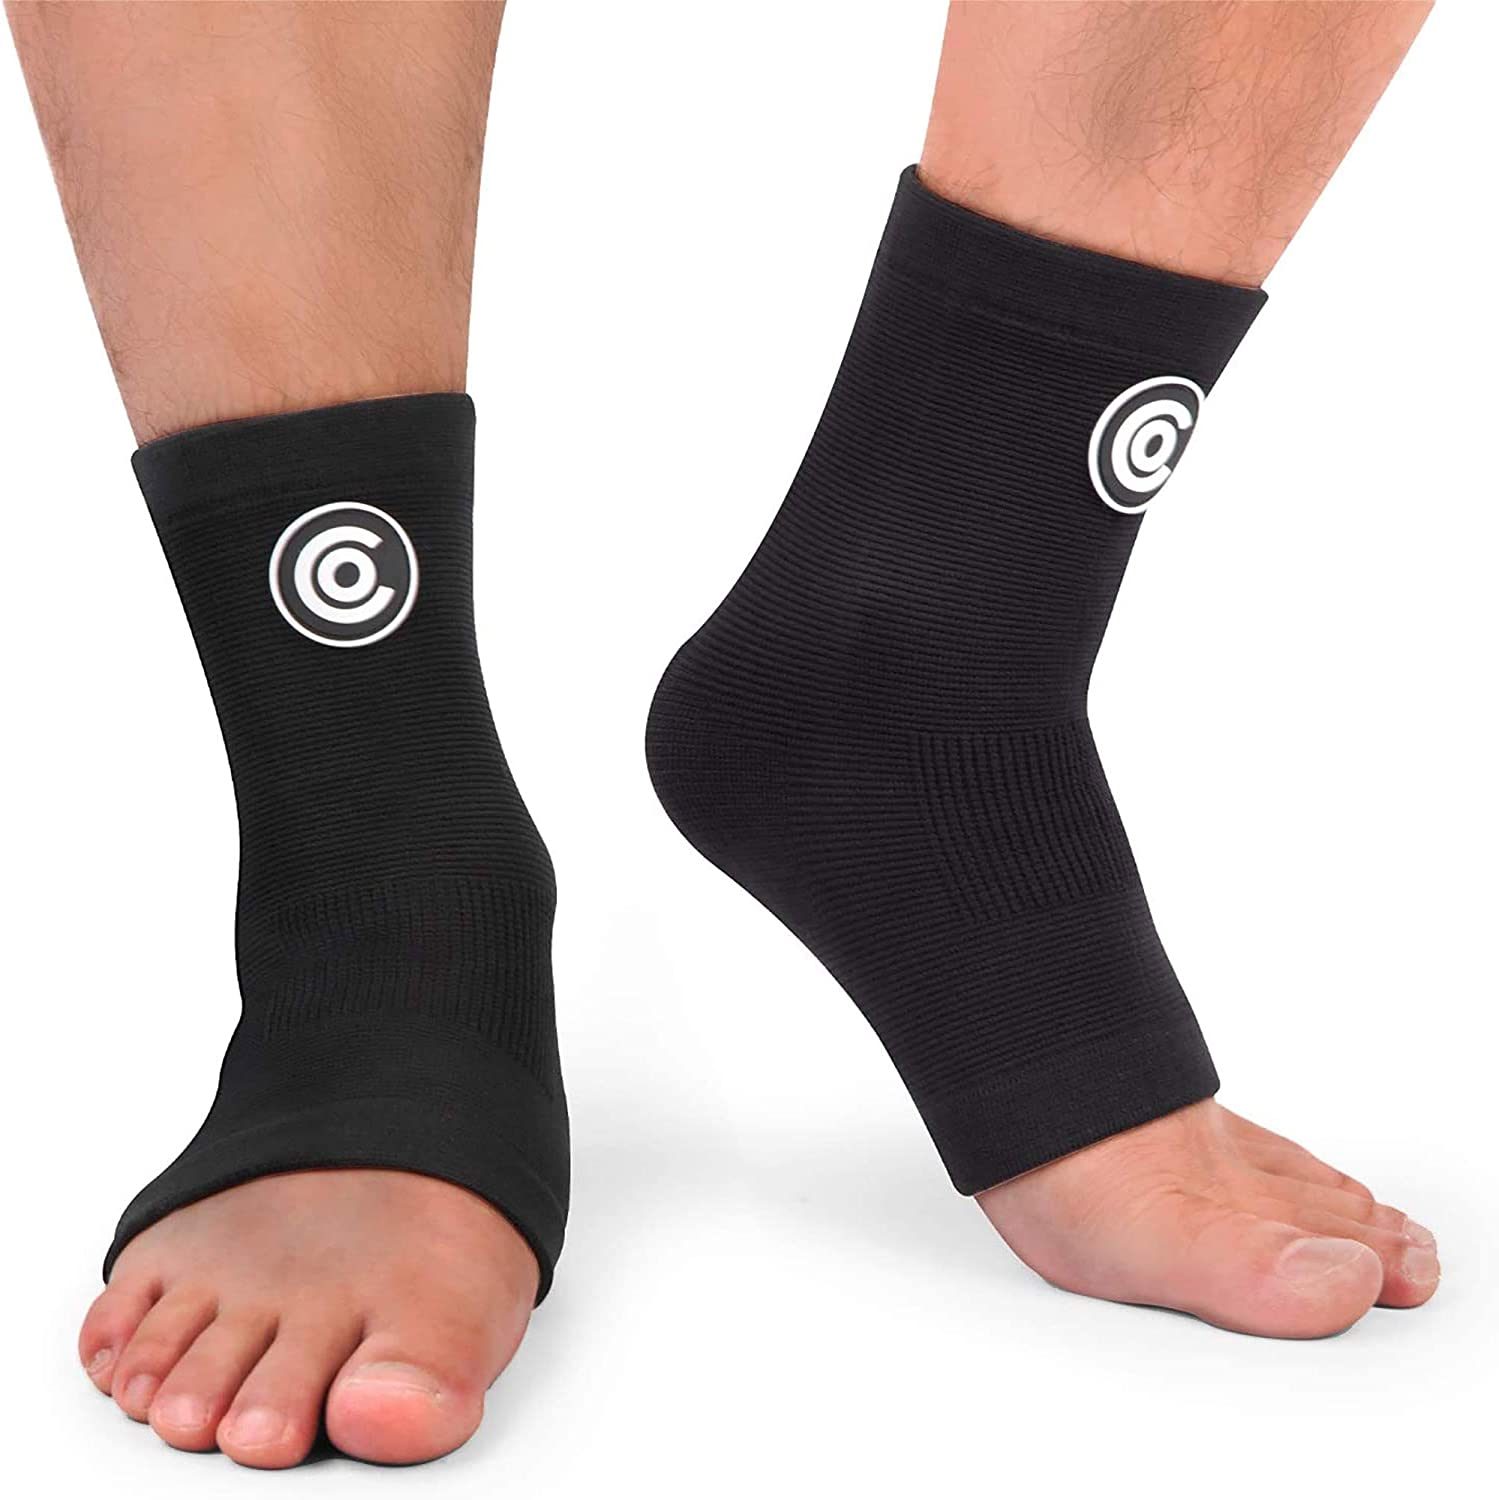 Injury Recovery Ankle Swelling Achilles Tendonitis Compression Foot Sleeves with Arch Support for Running Plantar Fasciitis Heel Spurs CAMBIVO 2 Pairs Ankle Brace Compression Support Sleeve